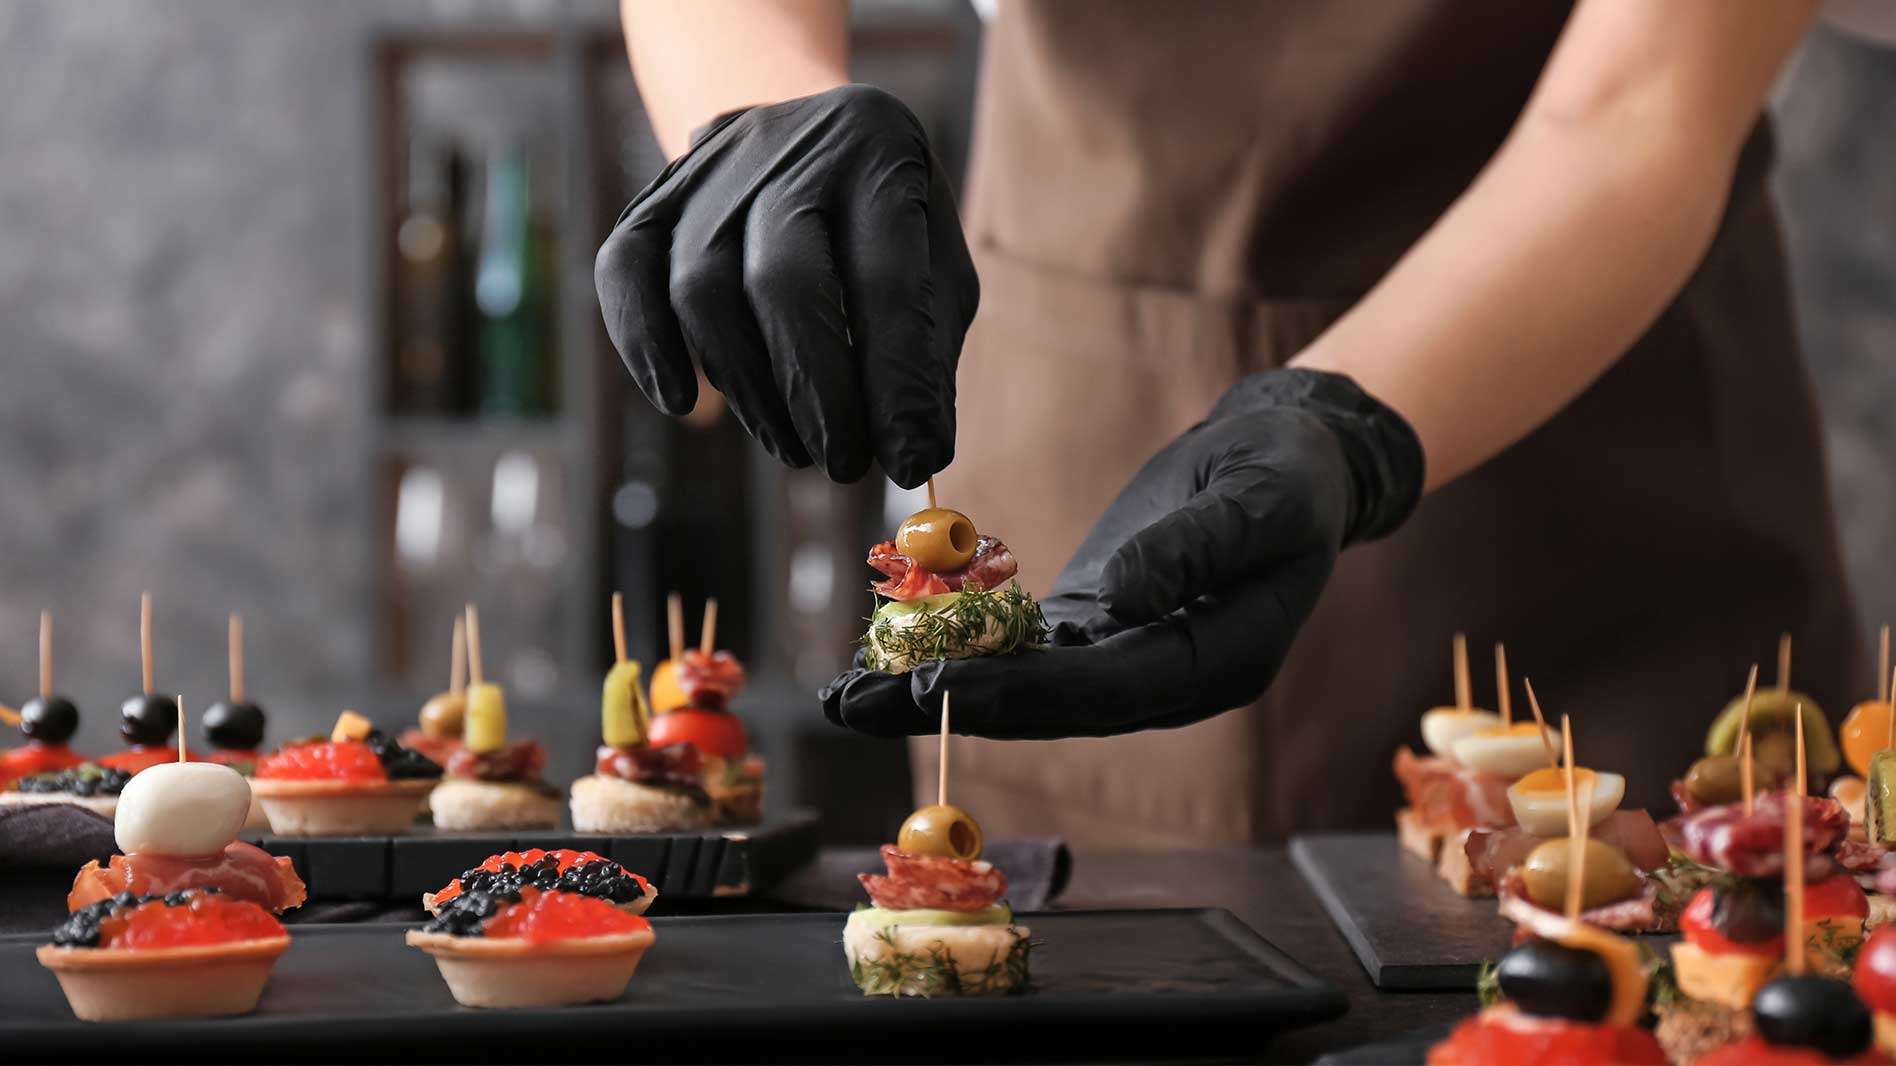 5 finger food options you should have on your catering menu for summer